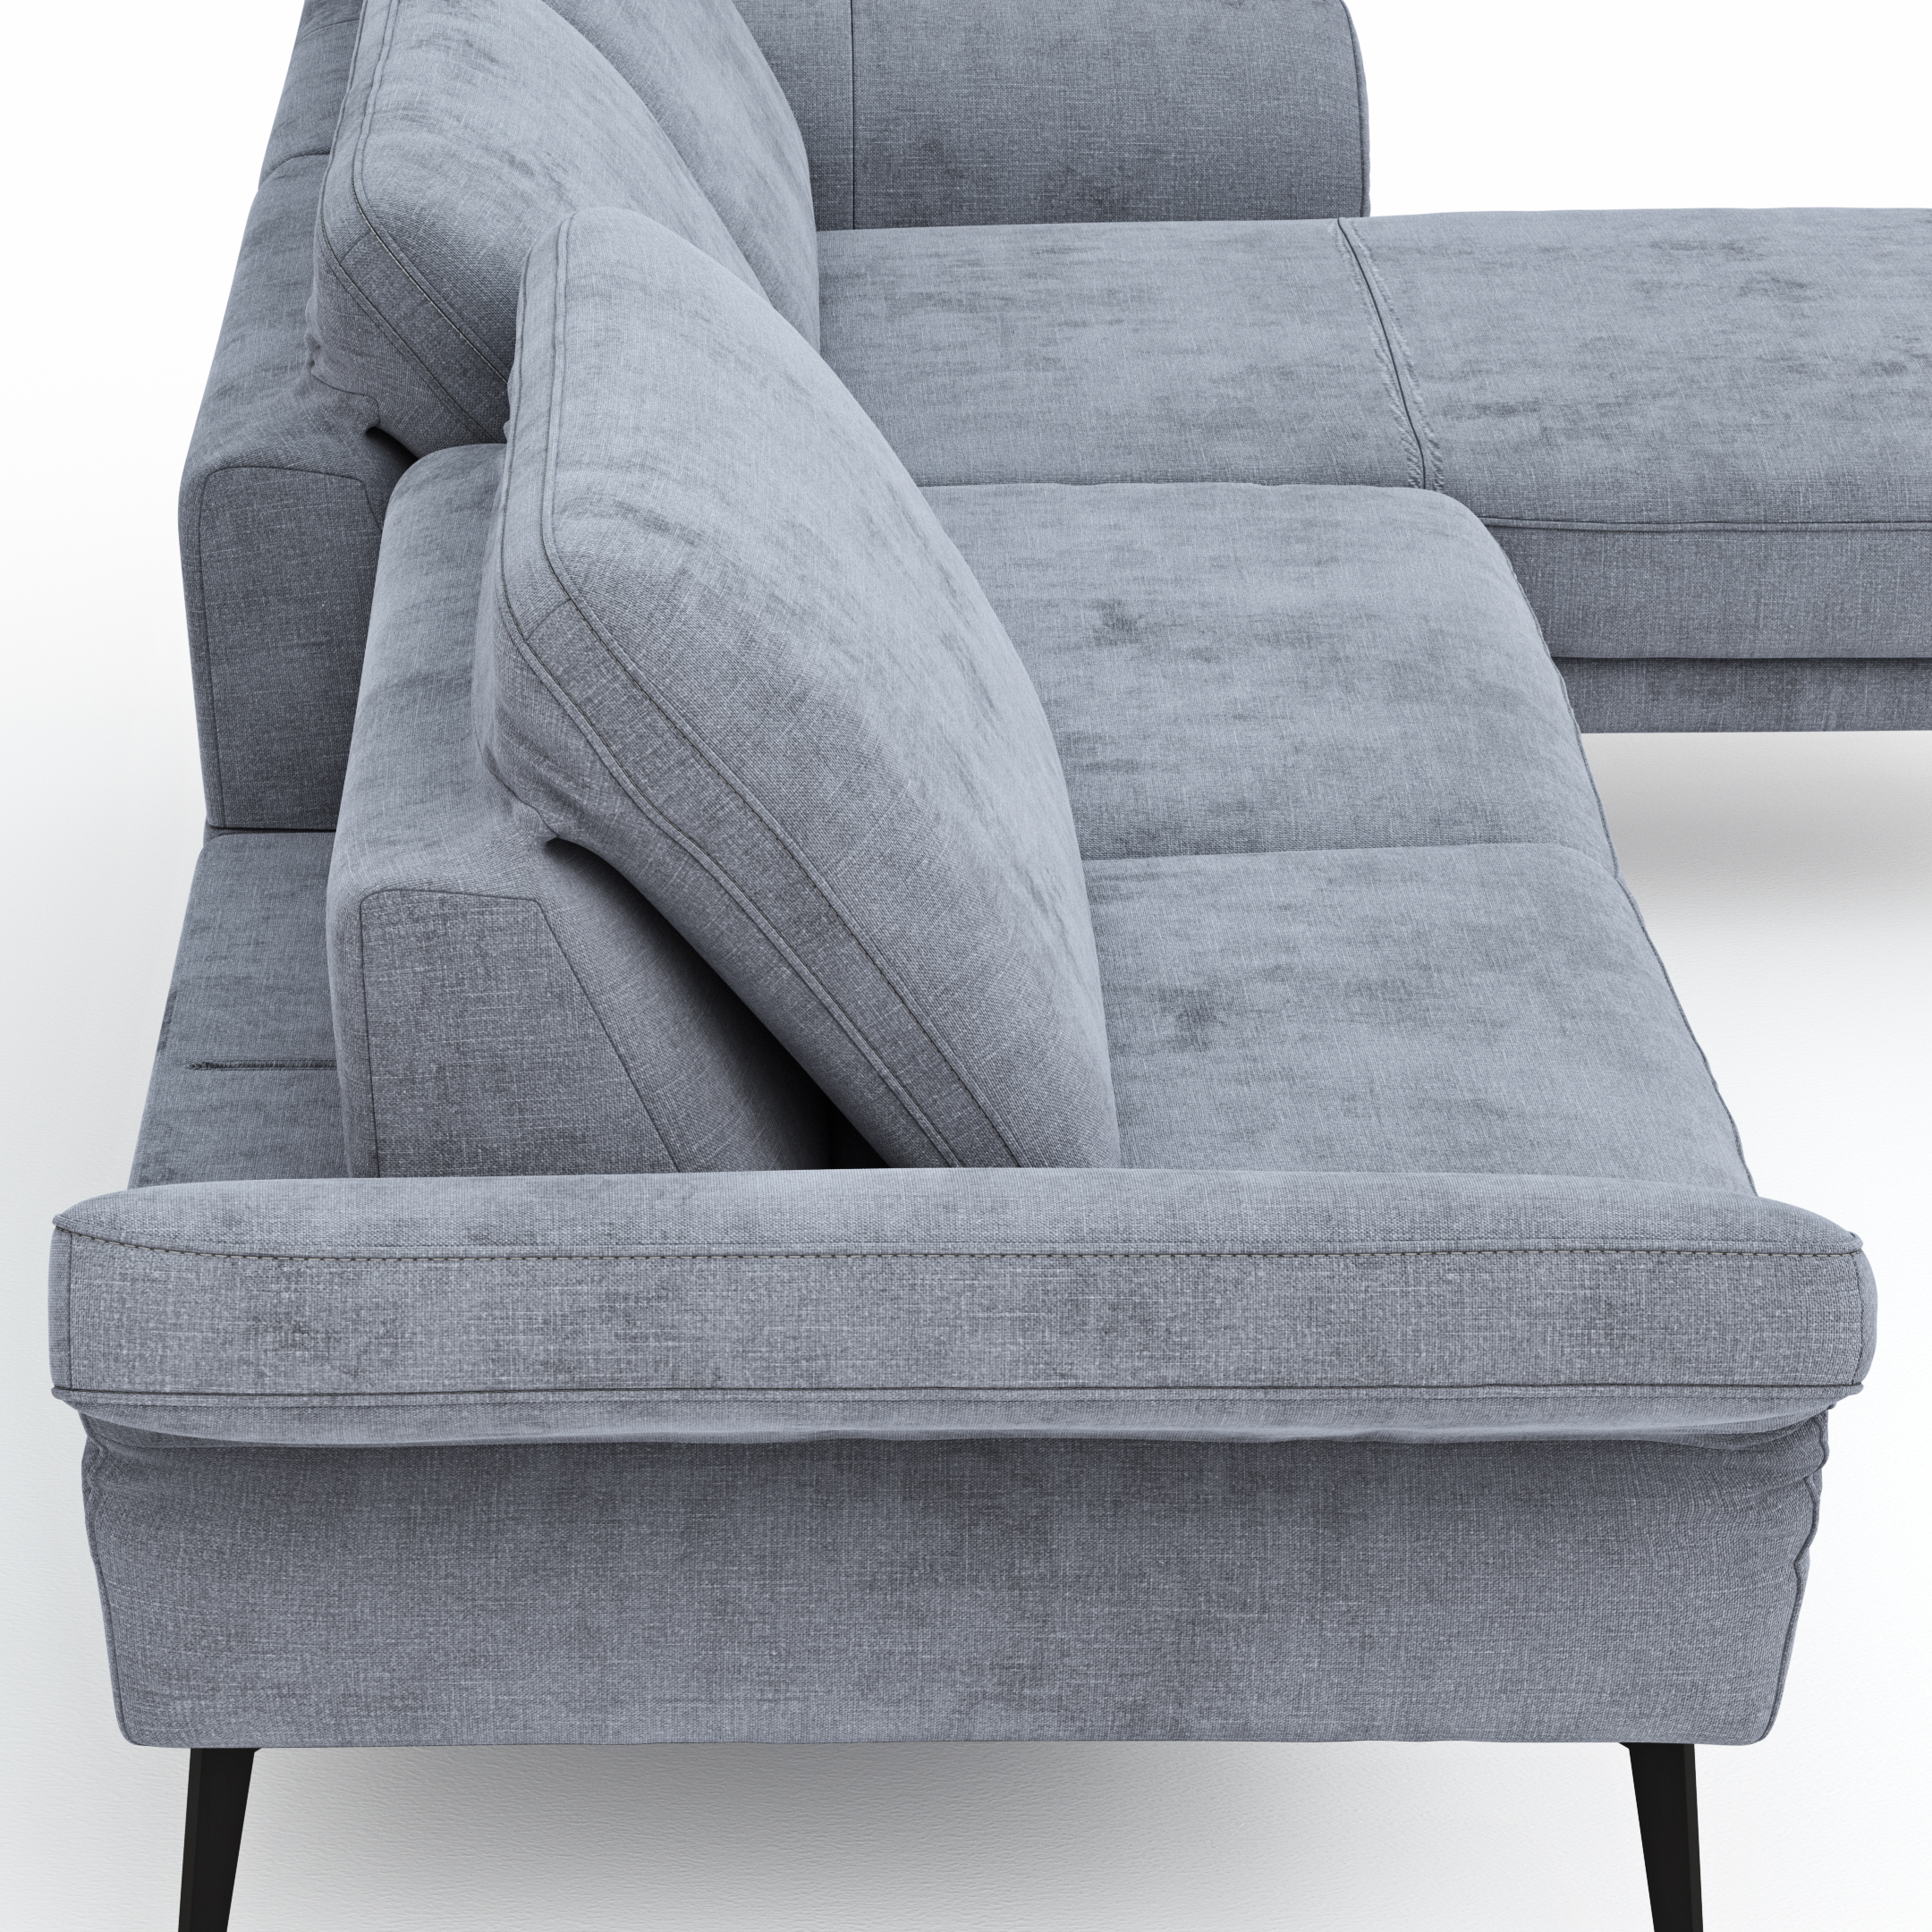 Global Select Sofa Estrela detailbild 3 104244 | Homepoet